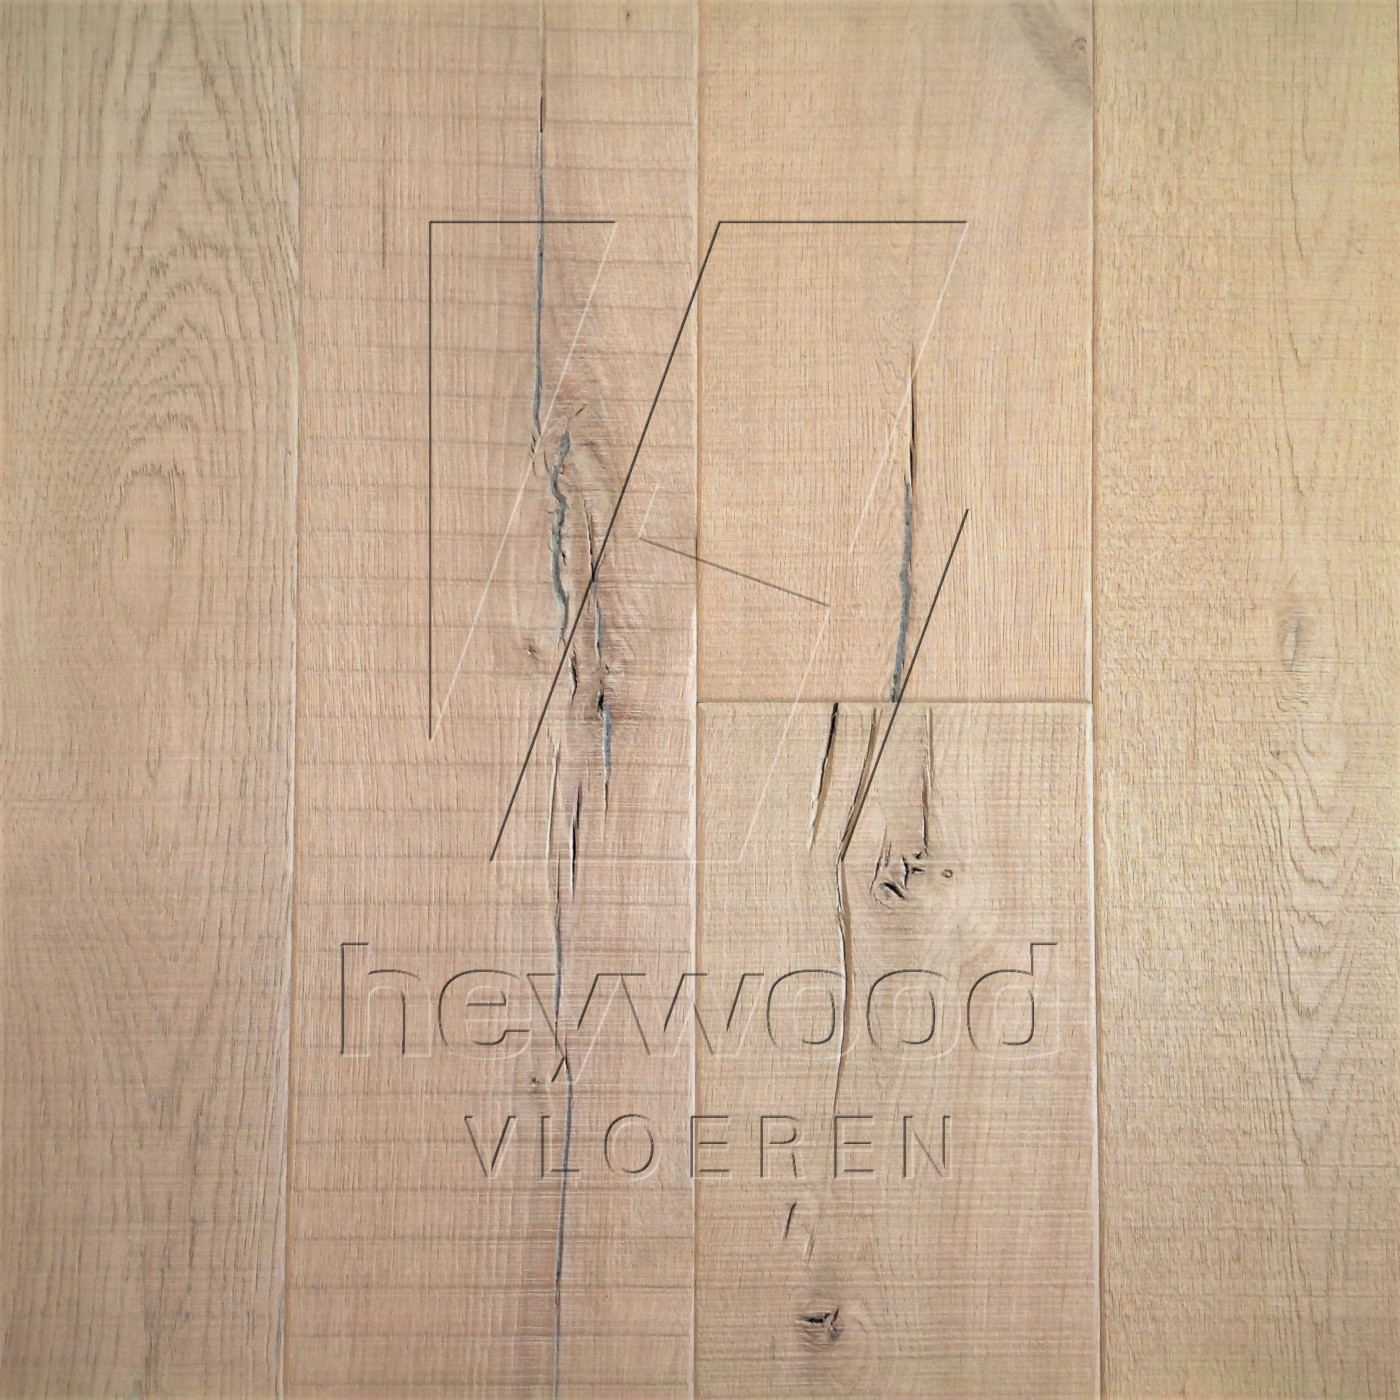 Knotting Hill Plank 'Camarque' in Aged Knotting Hill Surface of Aged Hardwood Floors